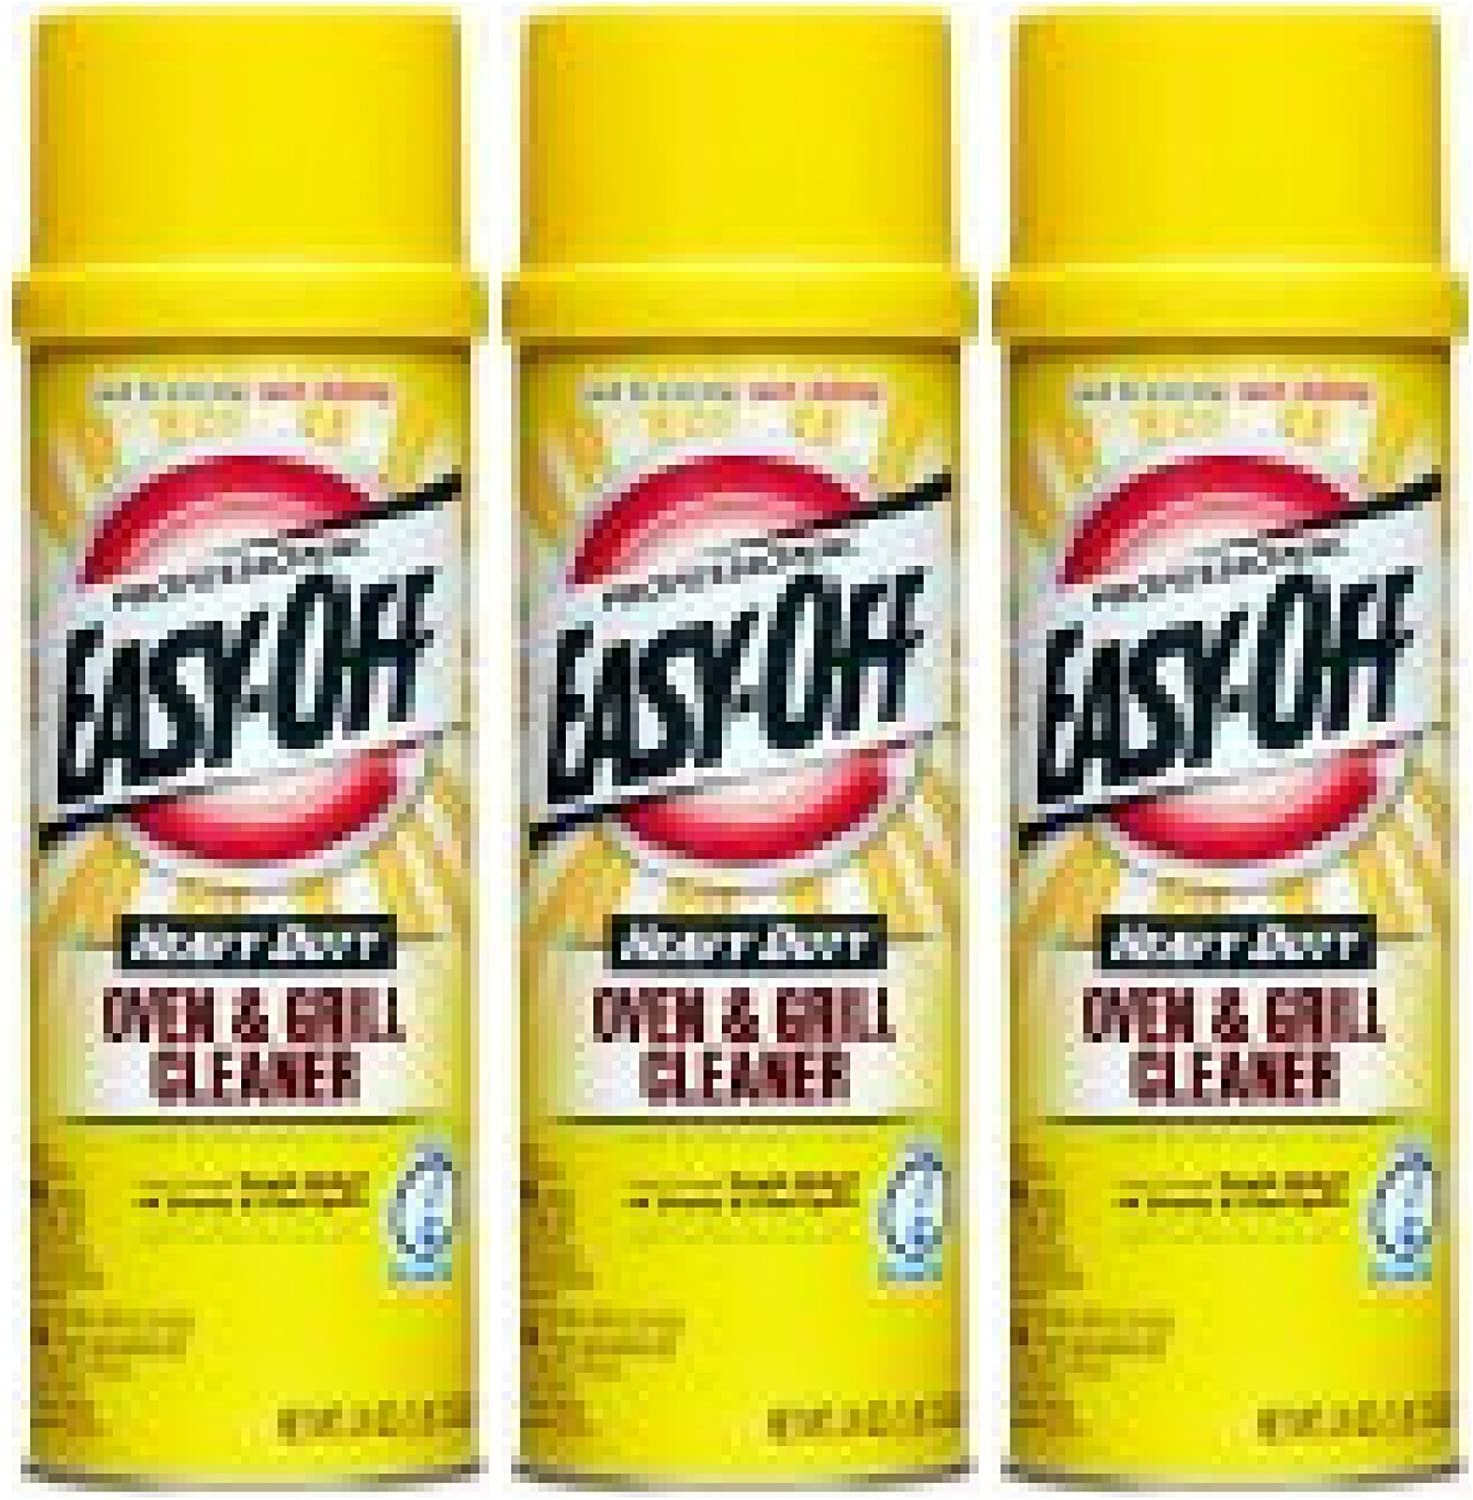 Easy-Off Heavy Duty Oven and Grill Cleaner, 24 Oz - 3 Count